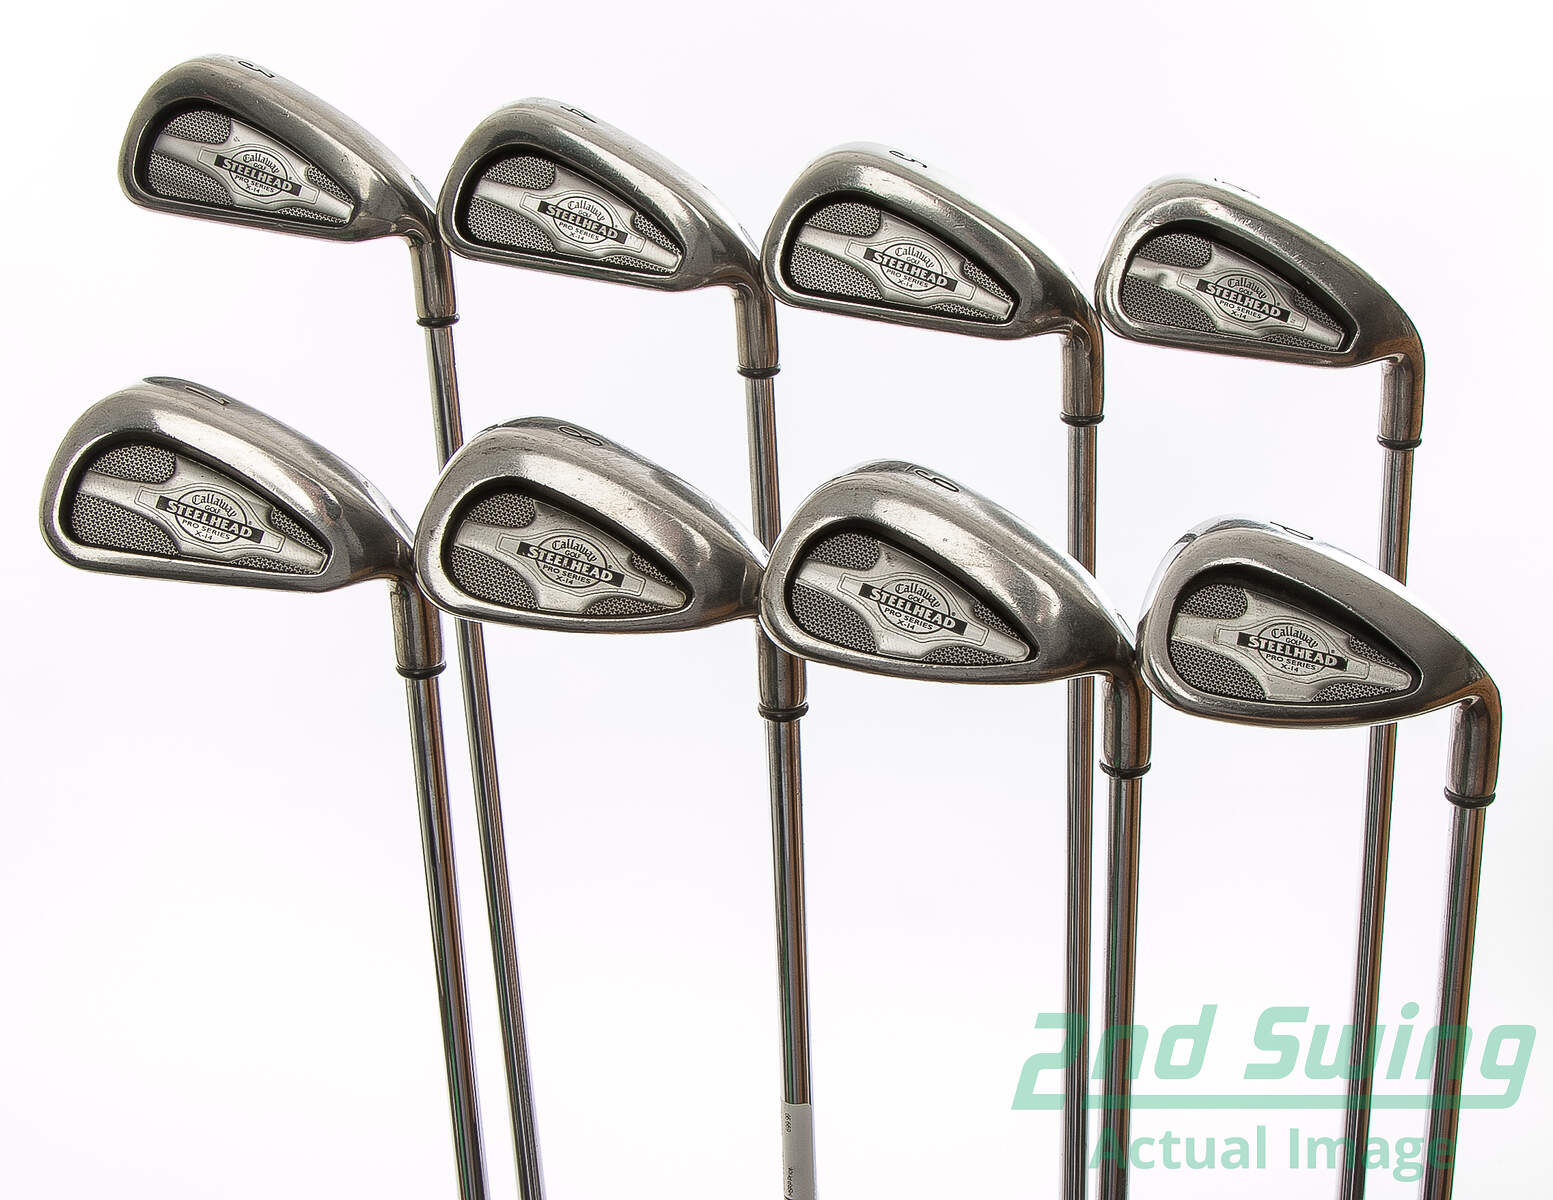 Used Callaway X 14 Pro Series Iron Set 3 Pw Stock Steel Shaft Steel